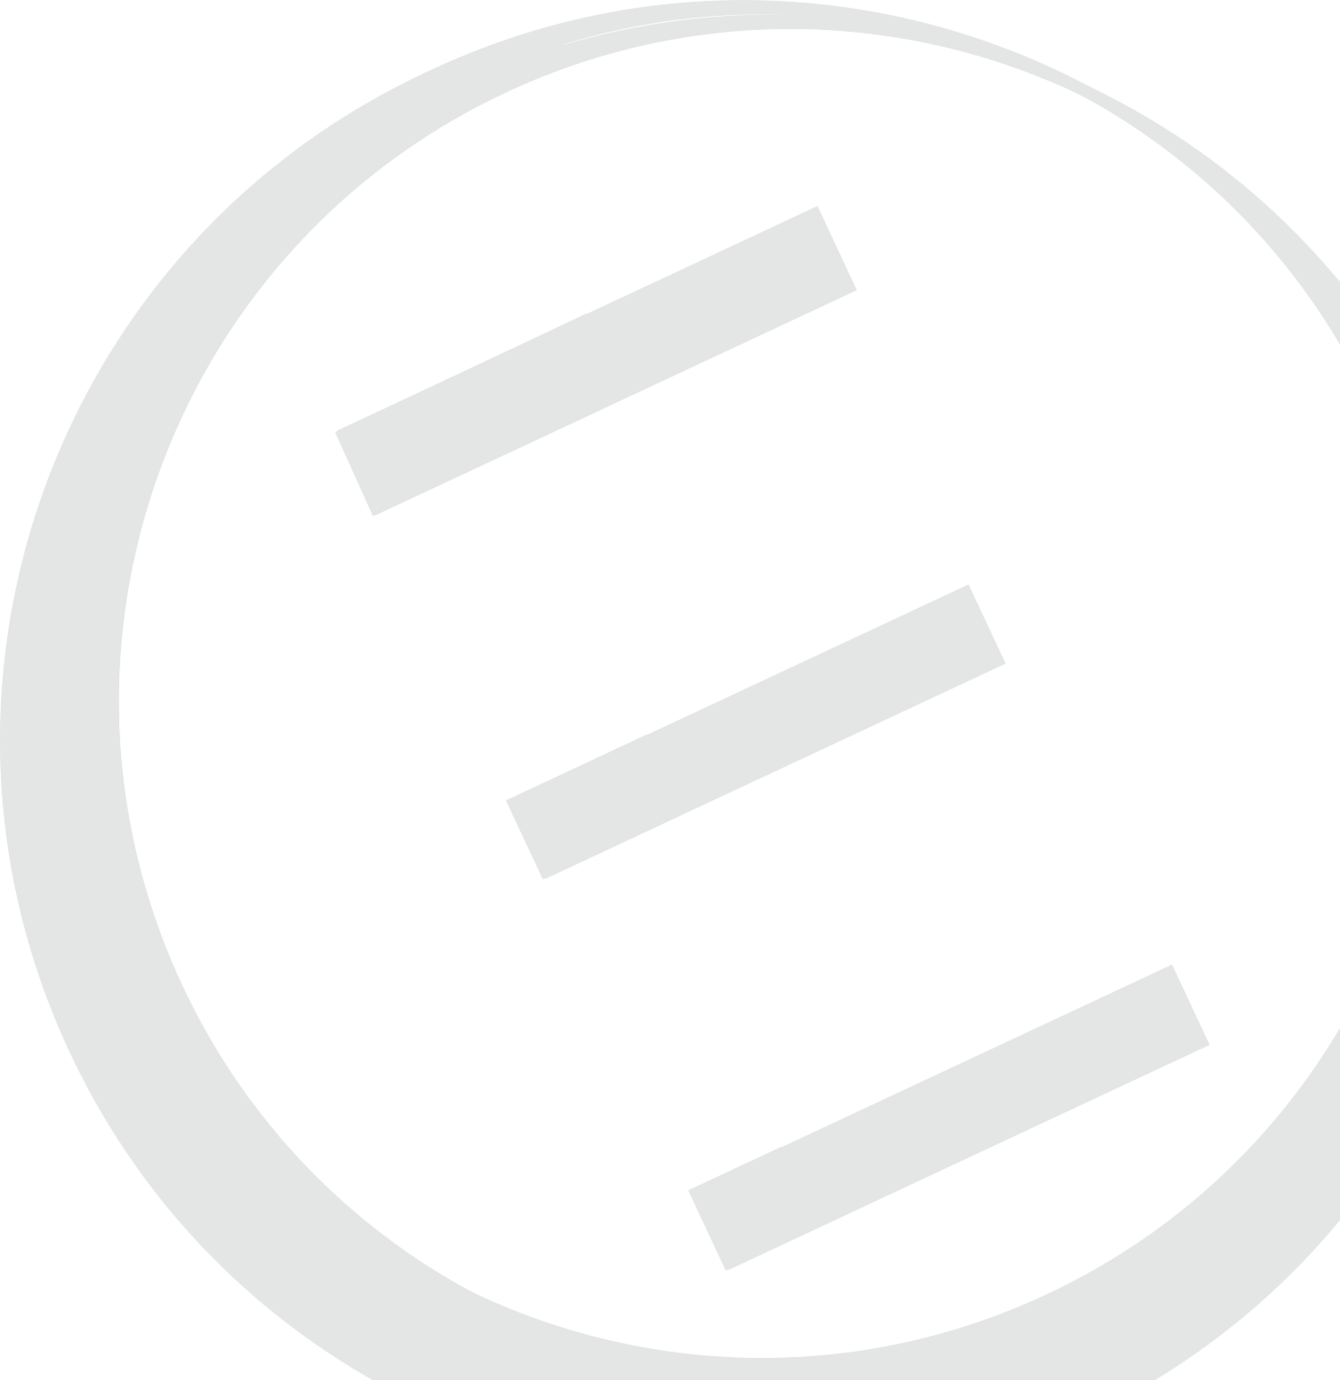 Elements Catering Logo Mark